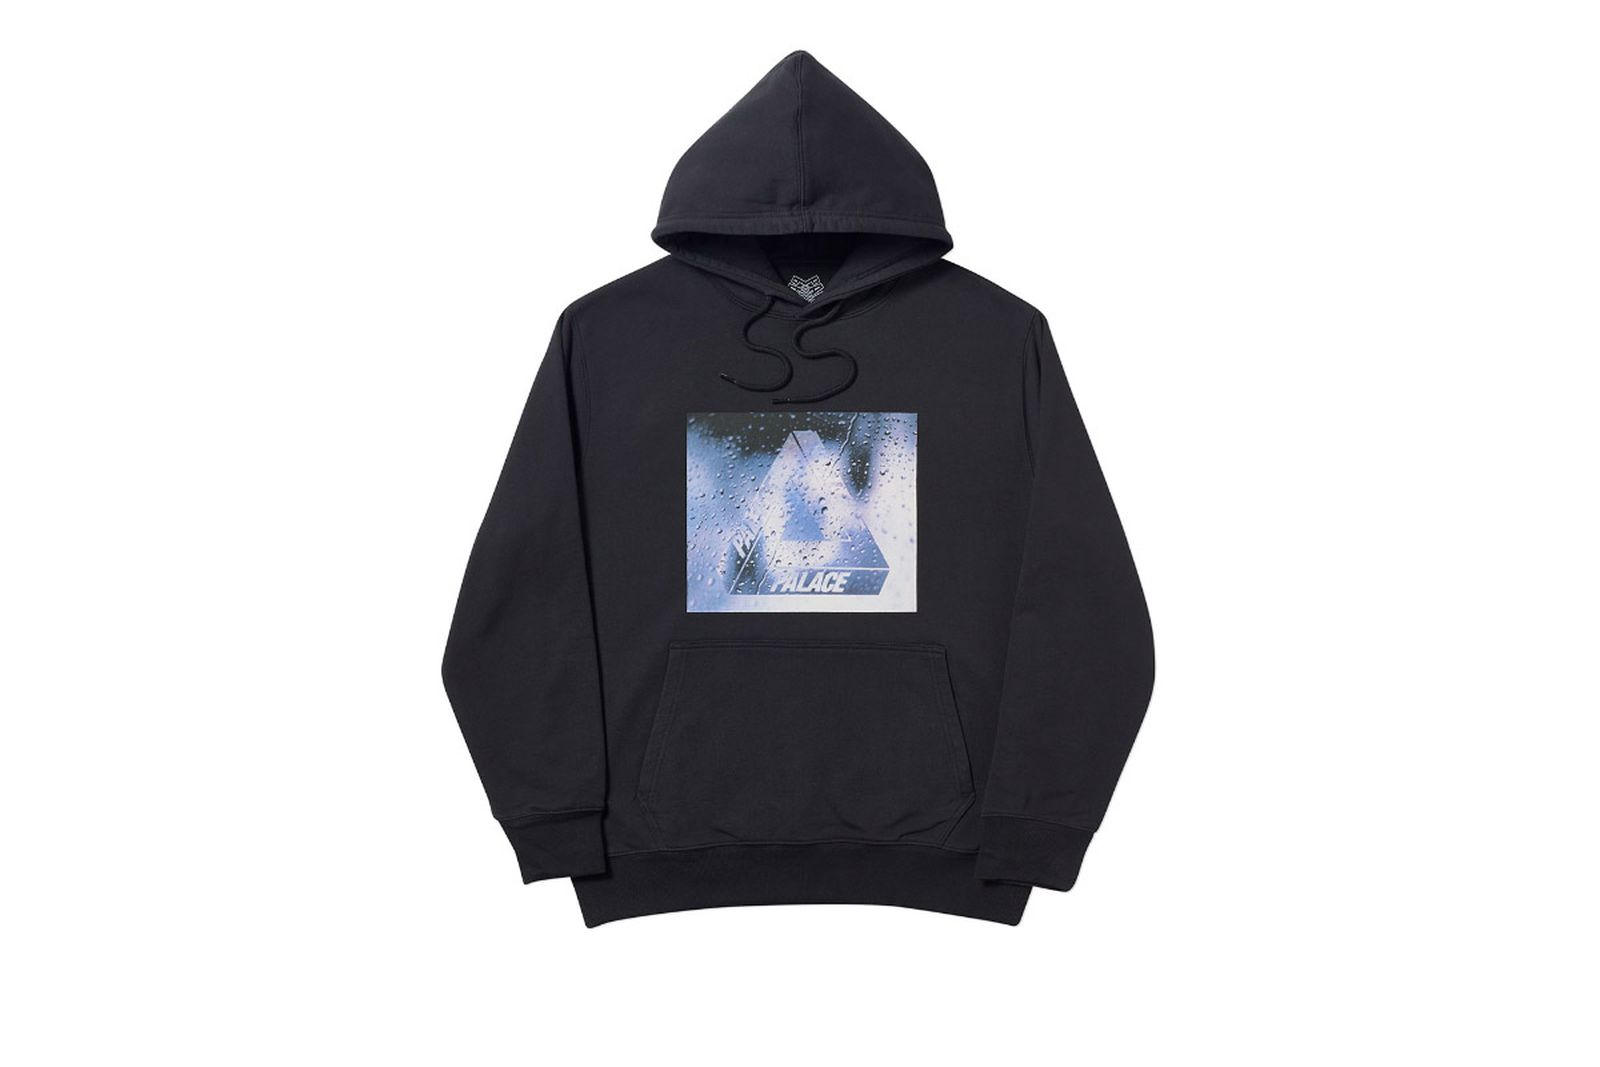 Palace 2019 Autumn Hoodie Window Licker black front 14671 adjusted